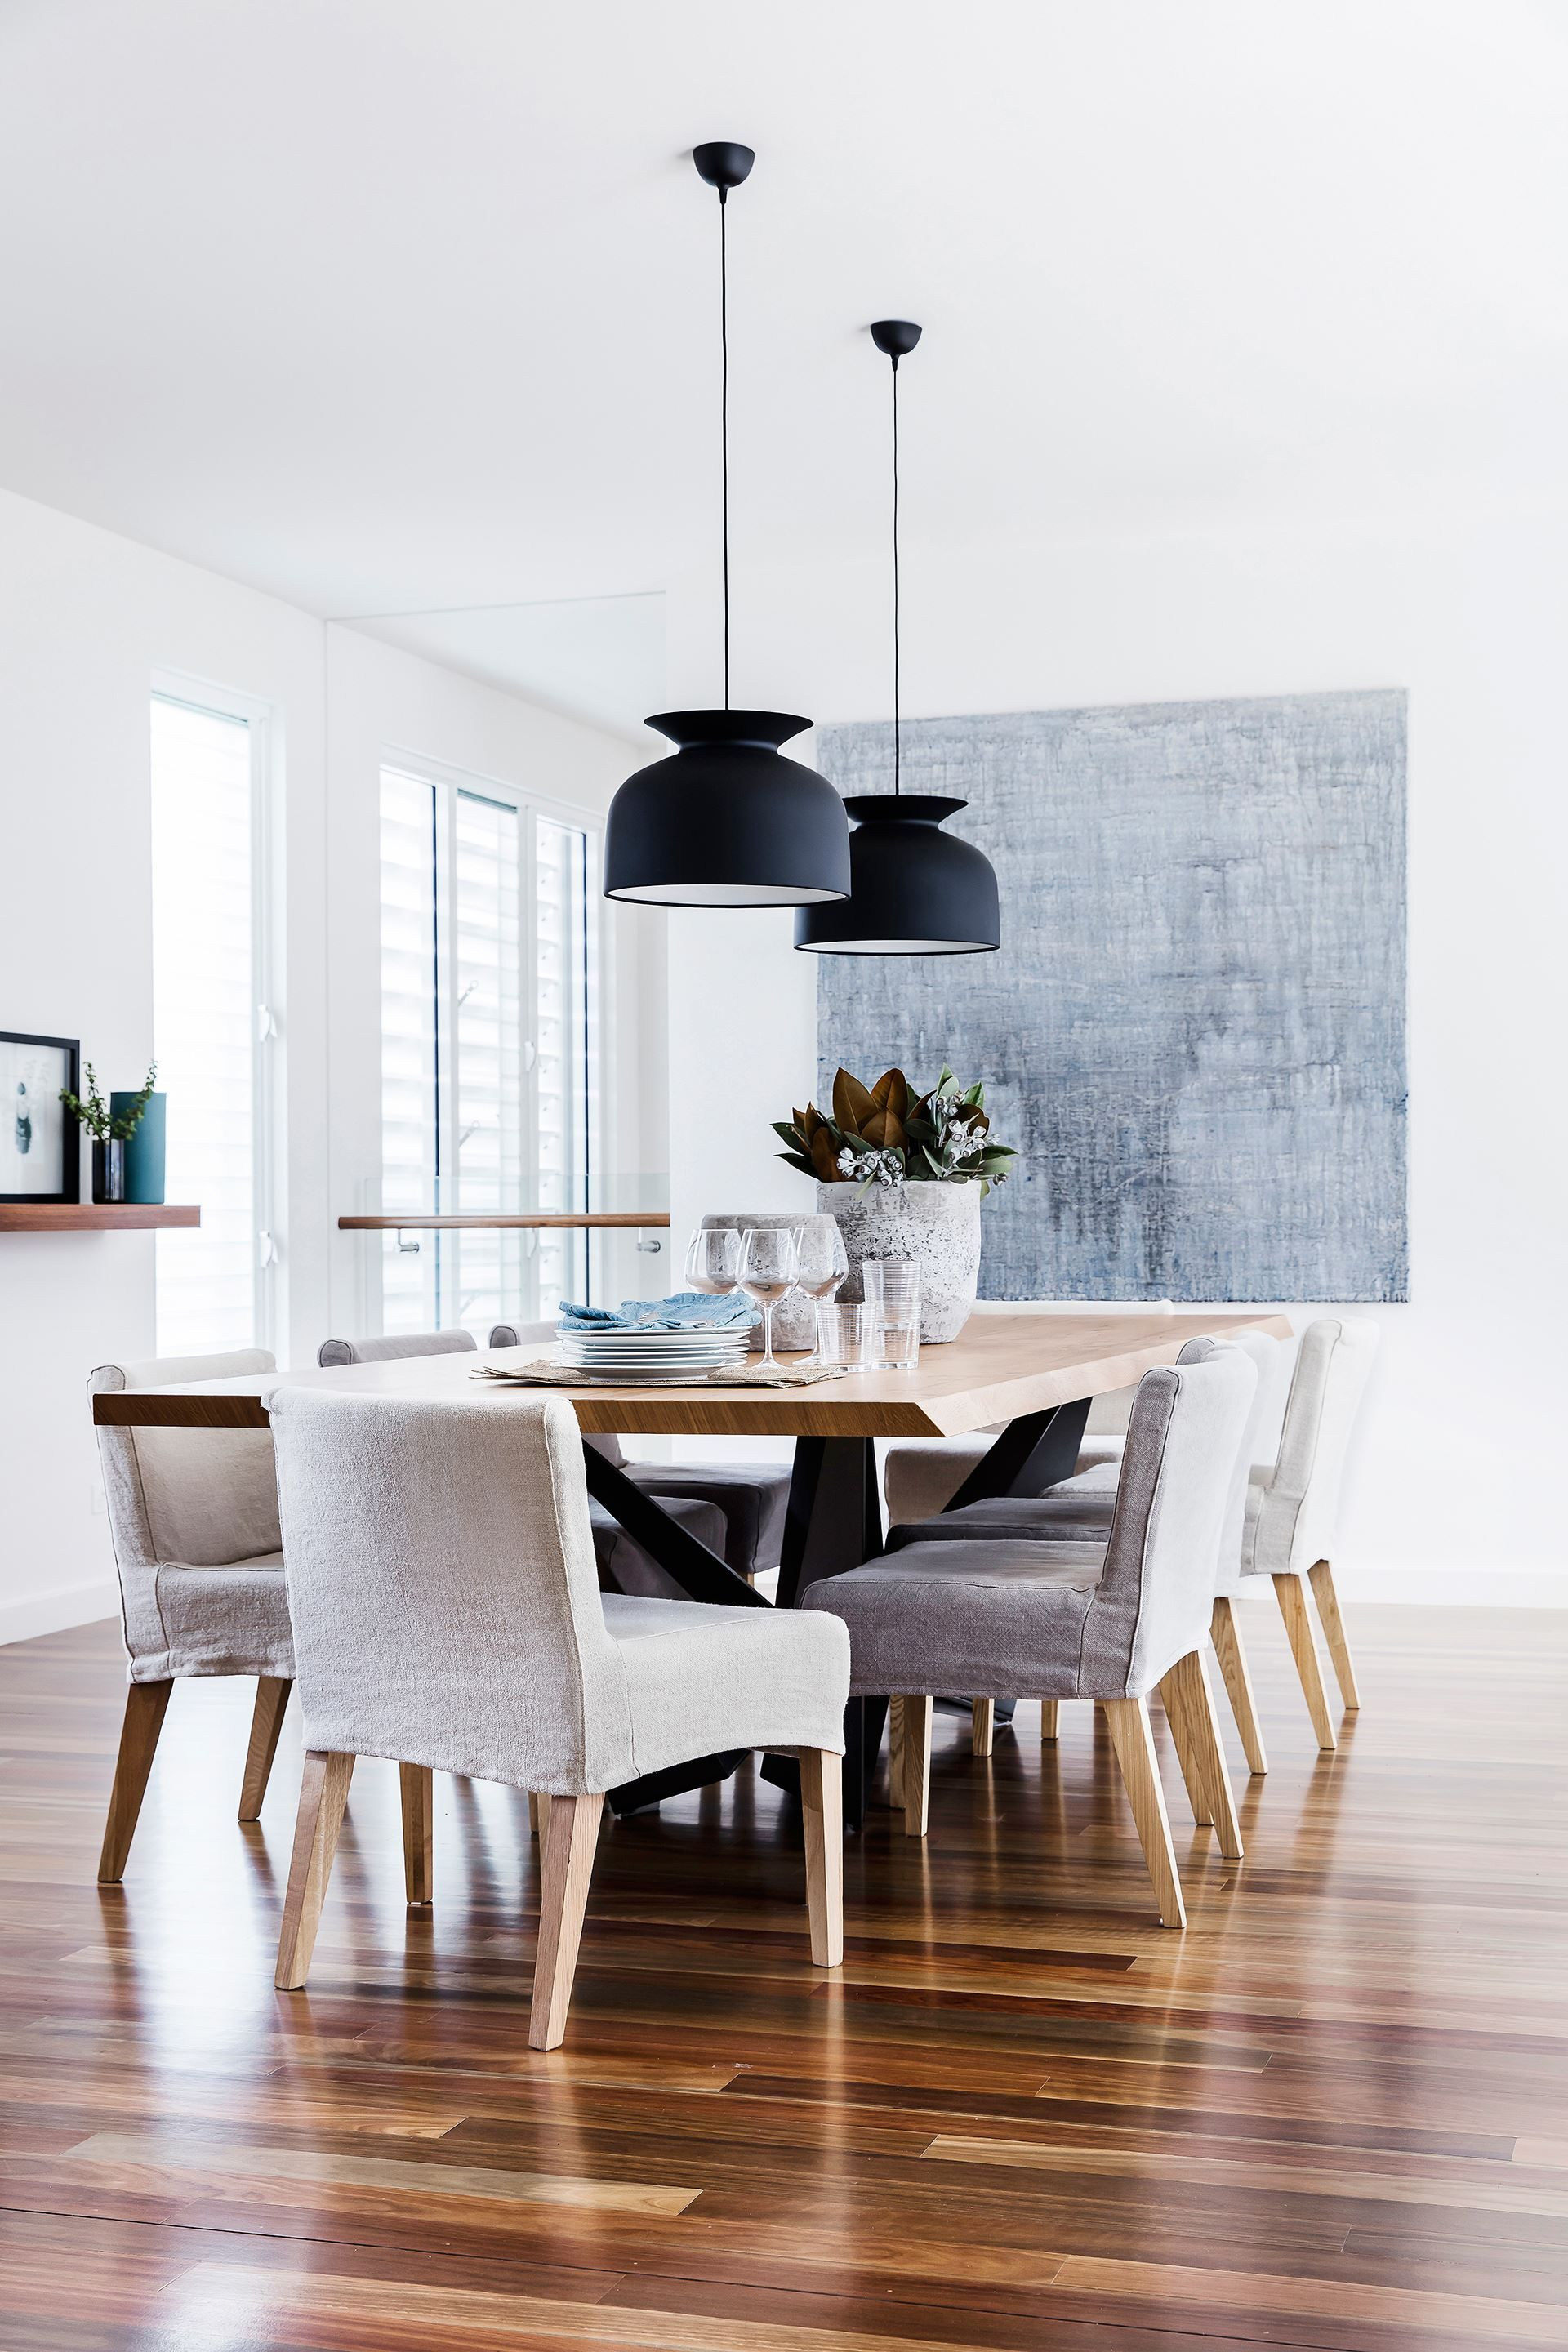 Dining room from a stylish new home on the hunter coast of nsw with